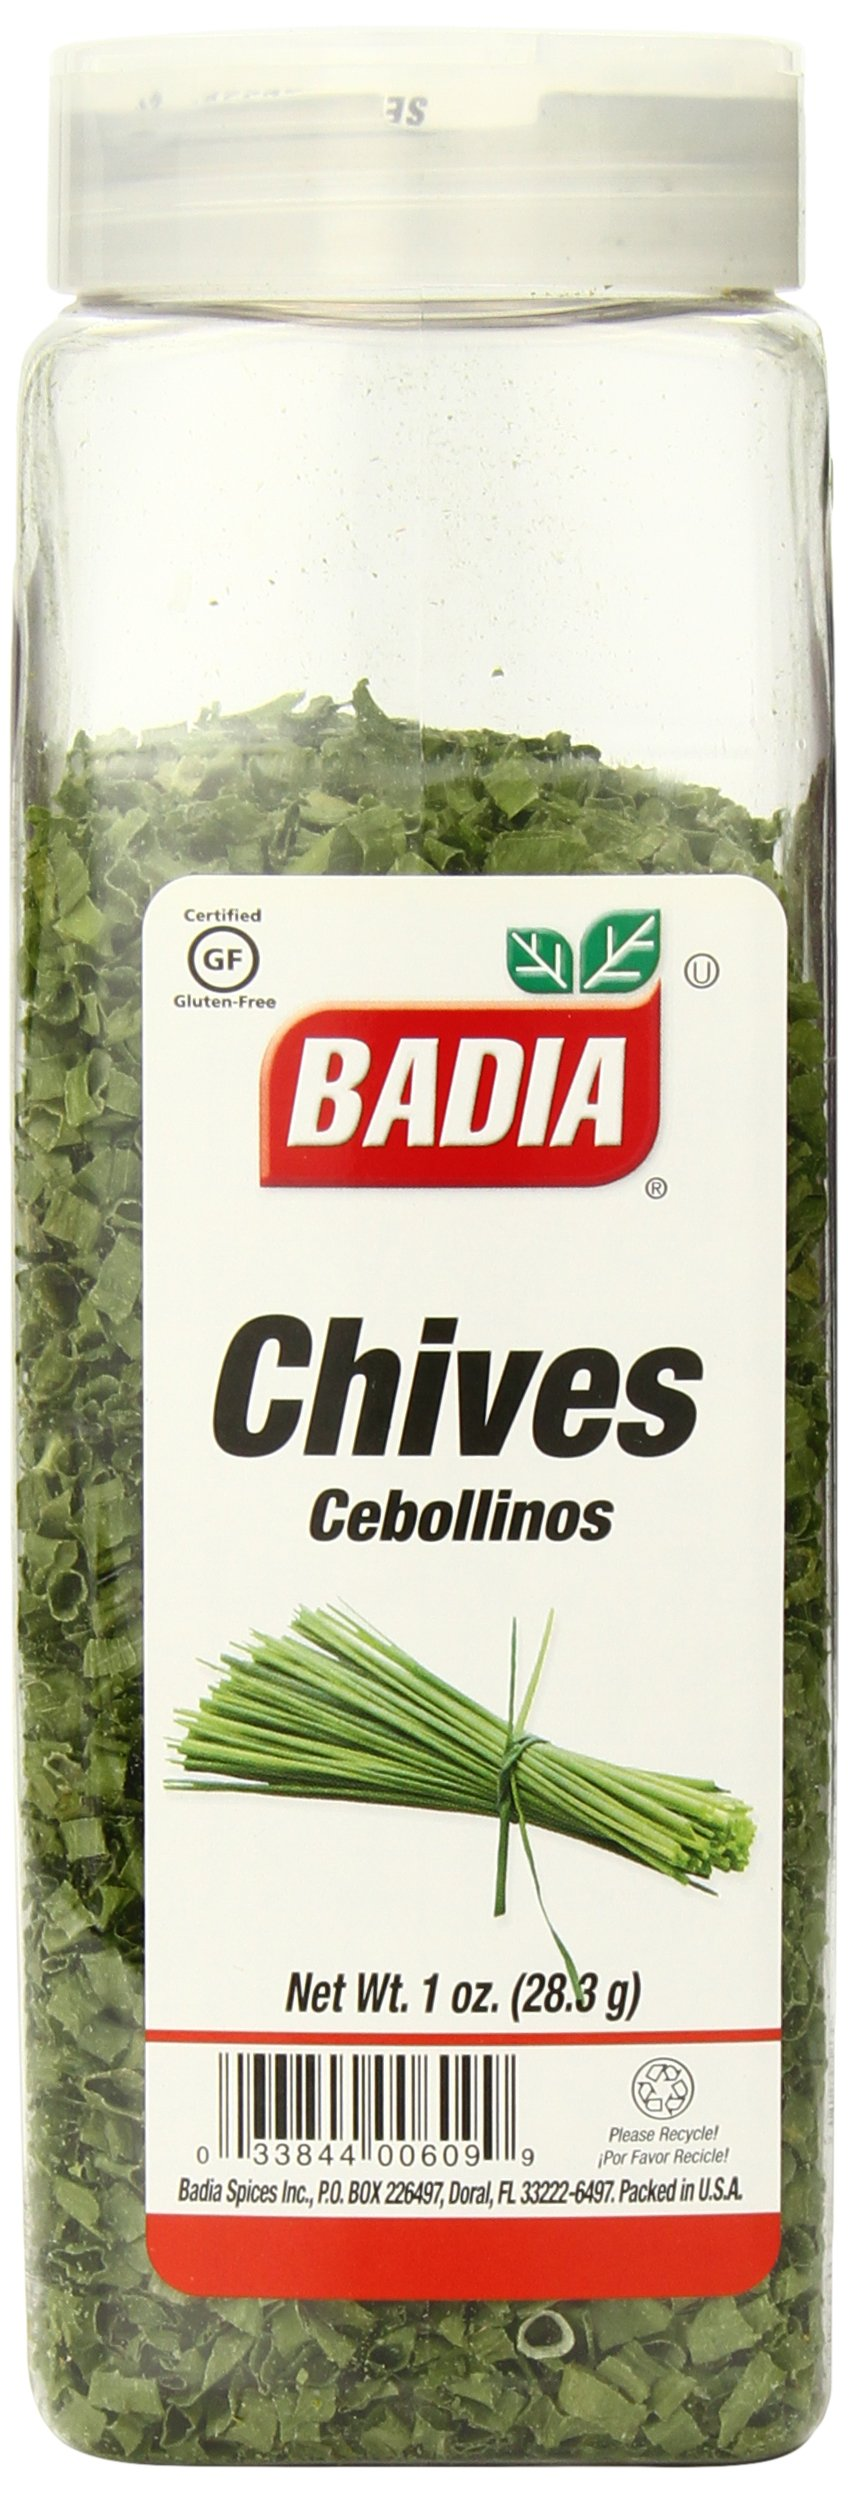 Badia Chives Dehydrated, 1 Ounce (Pack of 6) by Badia (Image #1)